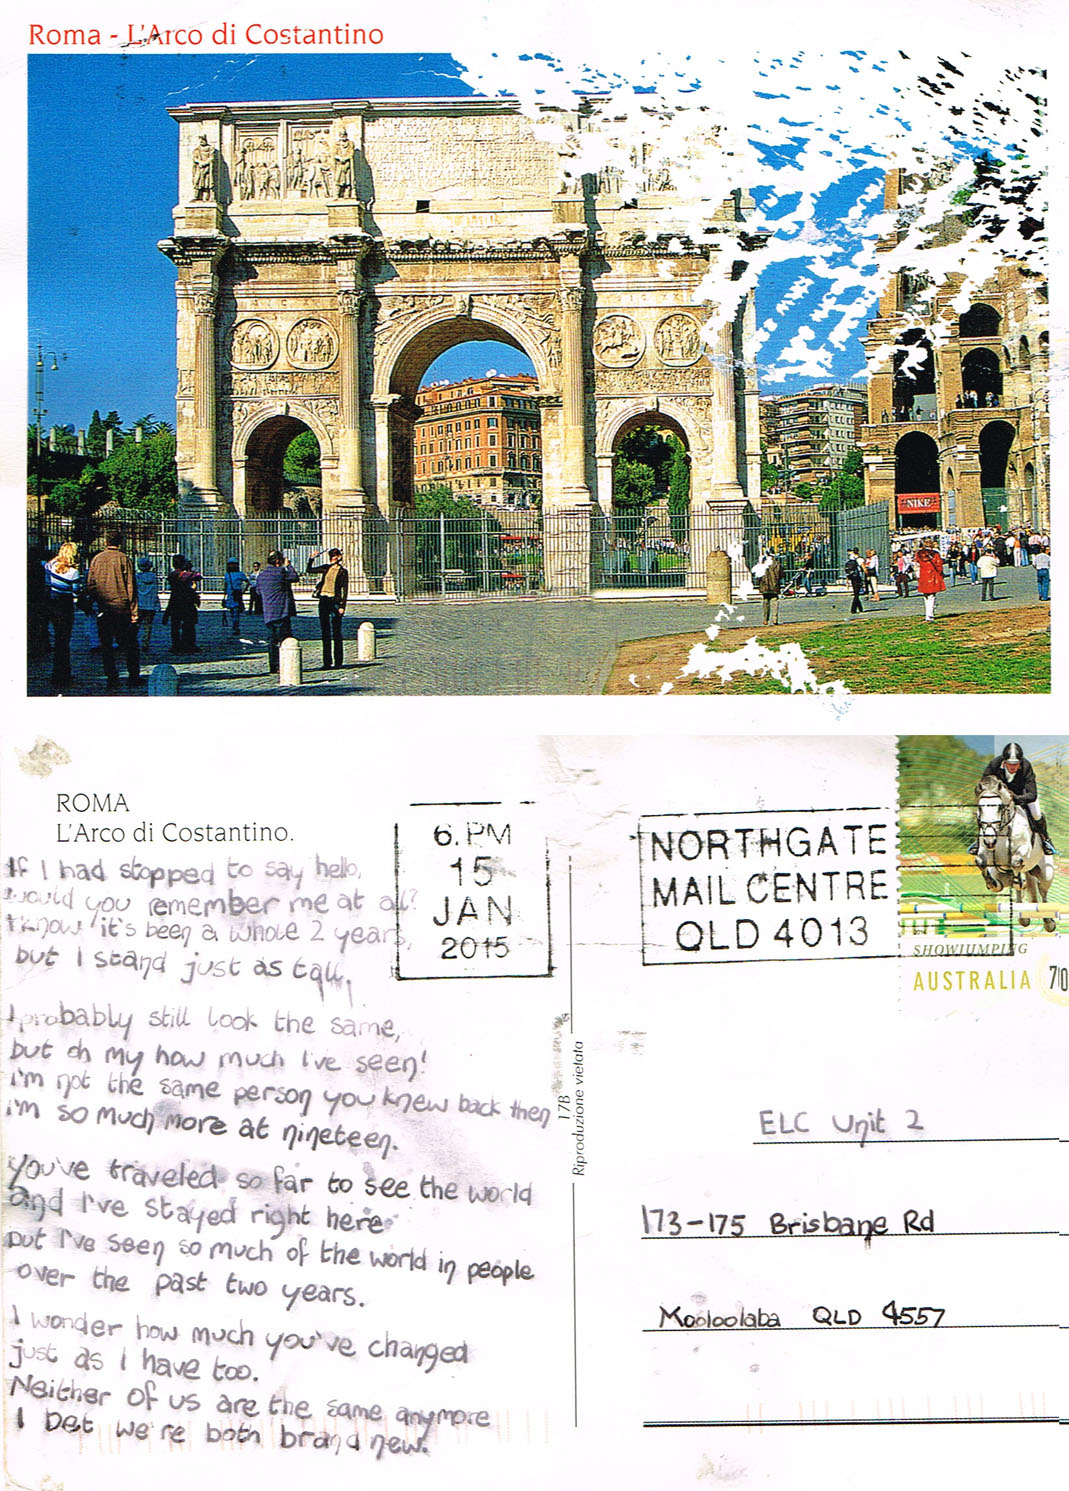 Postcard from former Extended Learning Centres student who travelled to Rome.